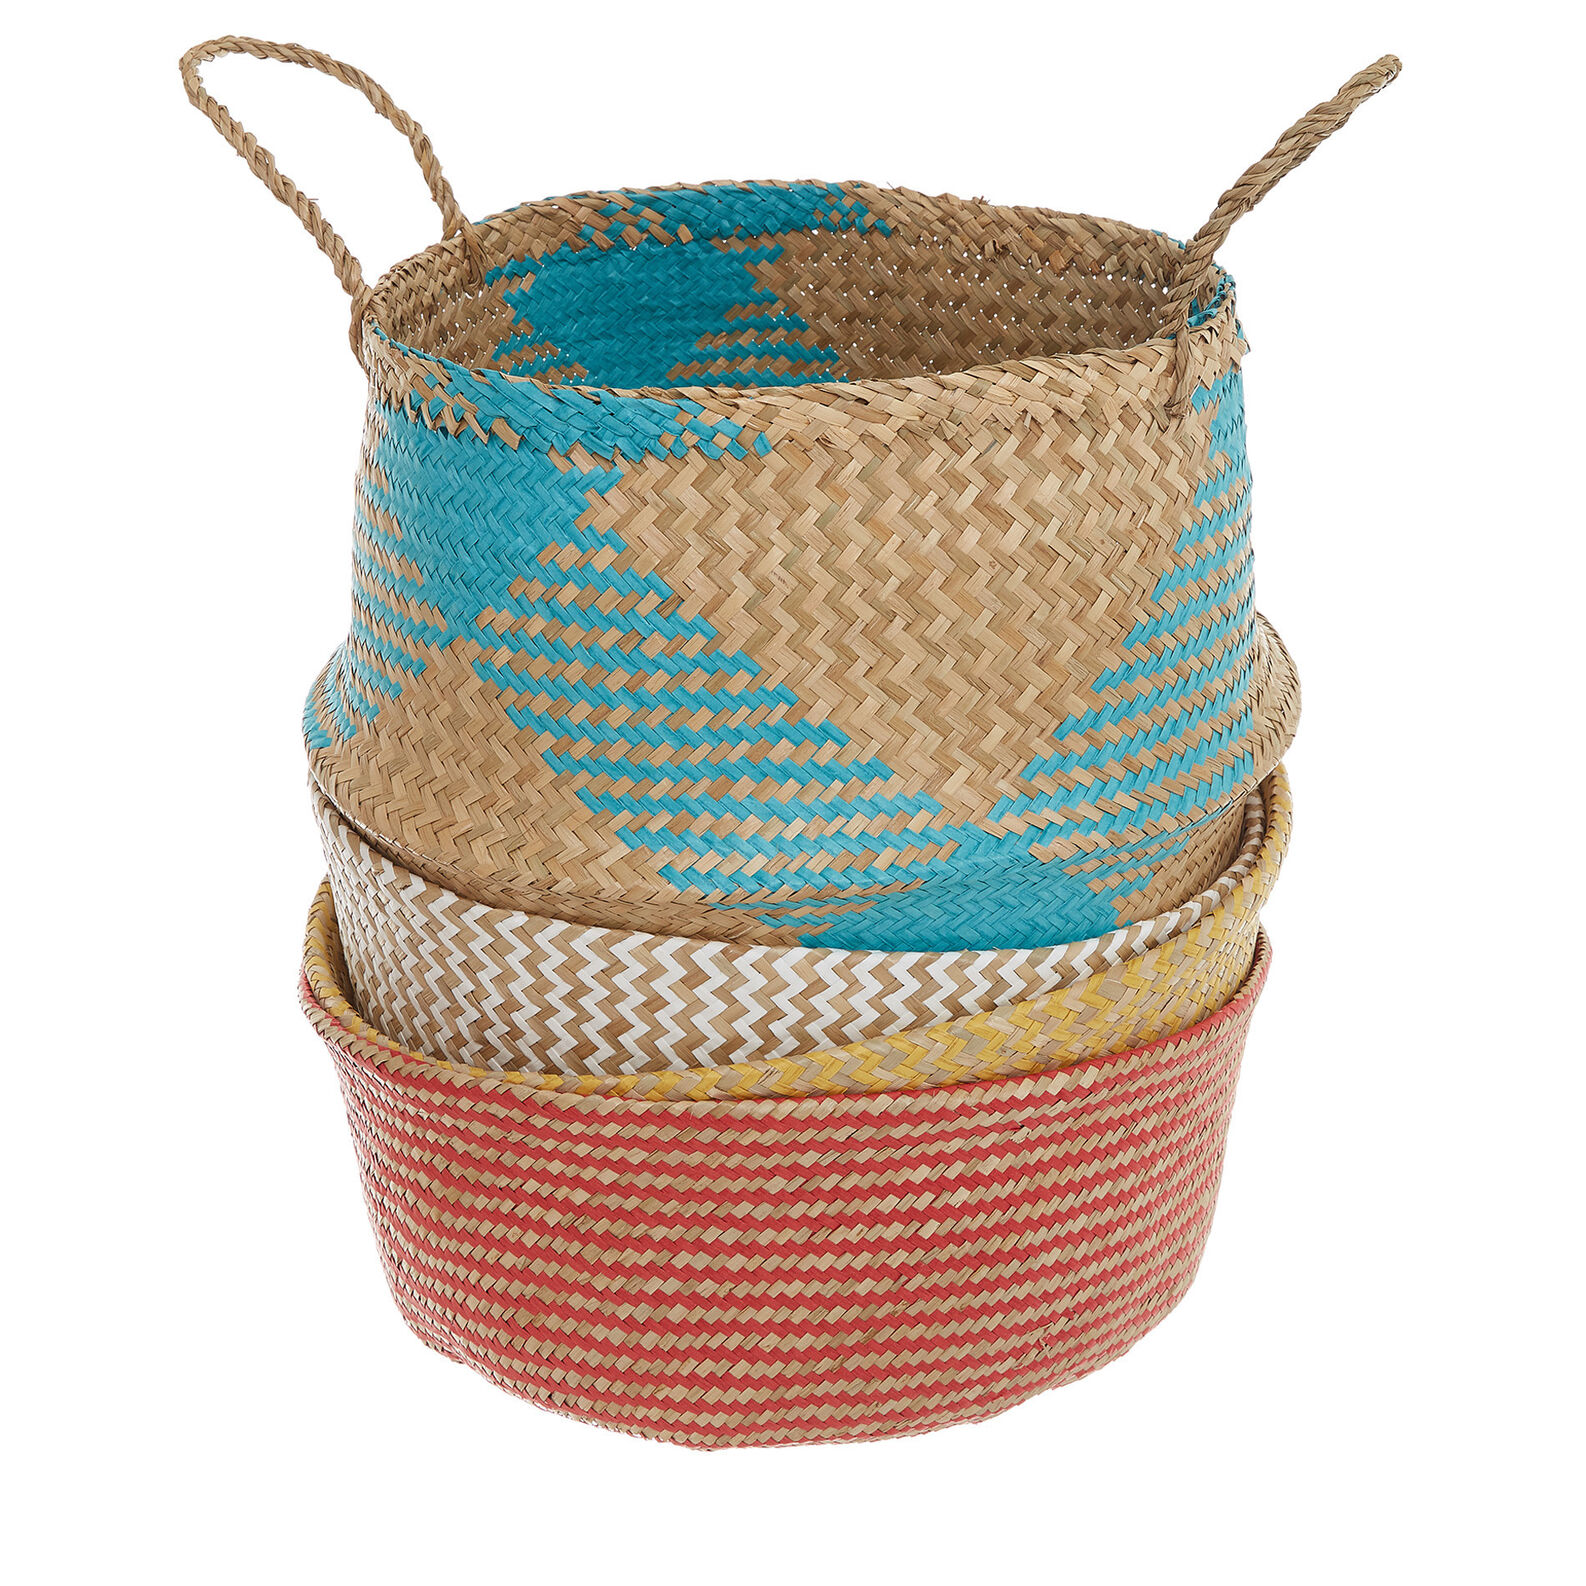 Hand-woven seagrass and paper basket